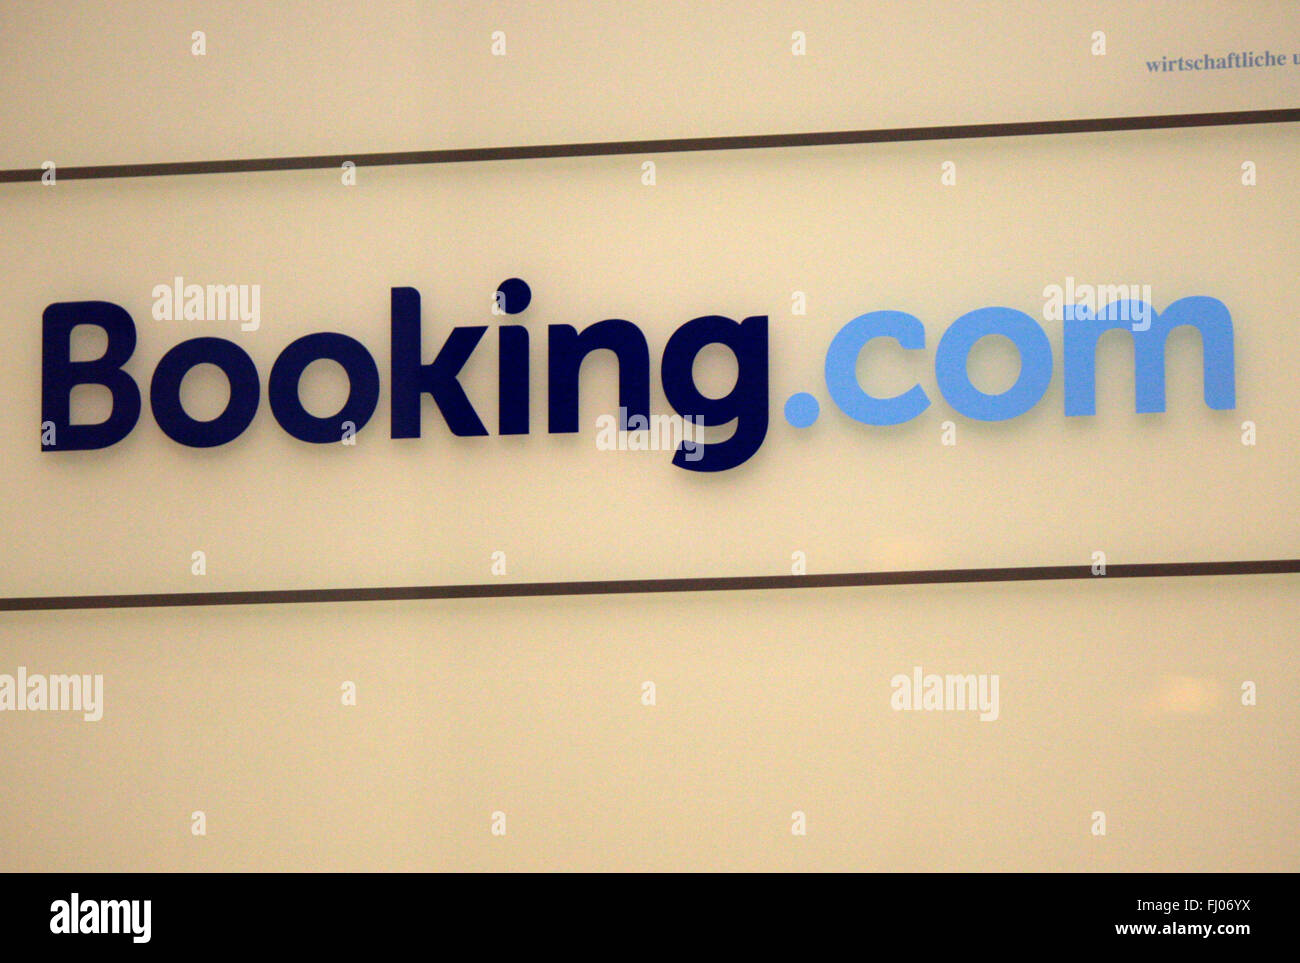 Markenname: 'Booking.com', Berlin. - Stock Image